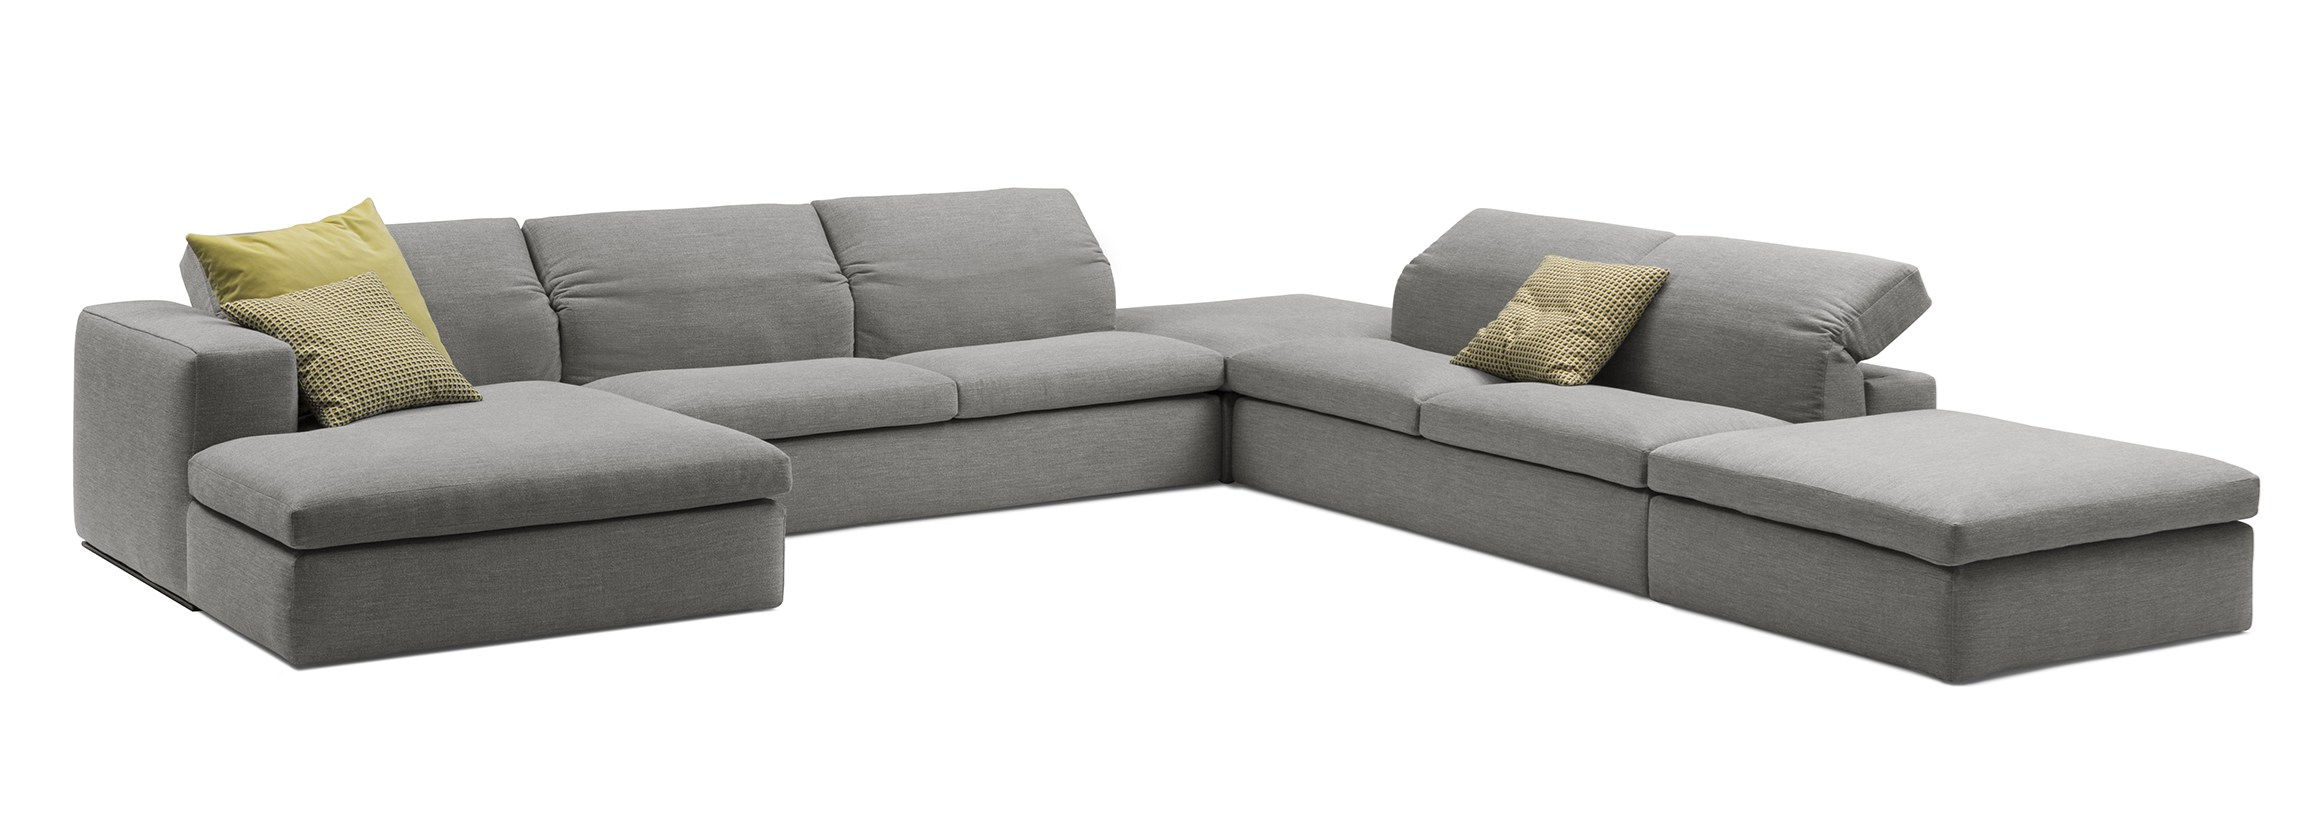 Sectional fabric sofa miami by bodema design giuseppe manzoni for Sectional couches in miami